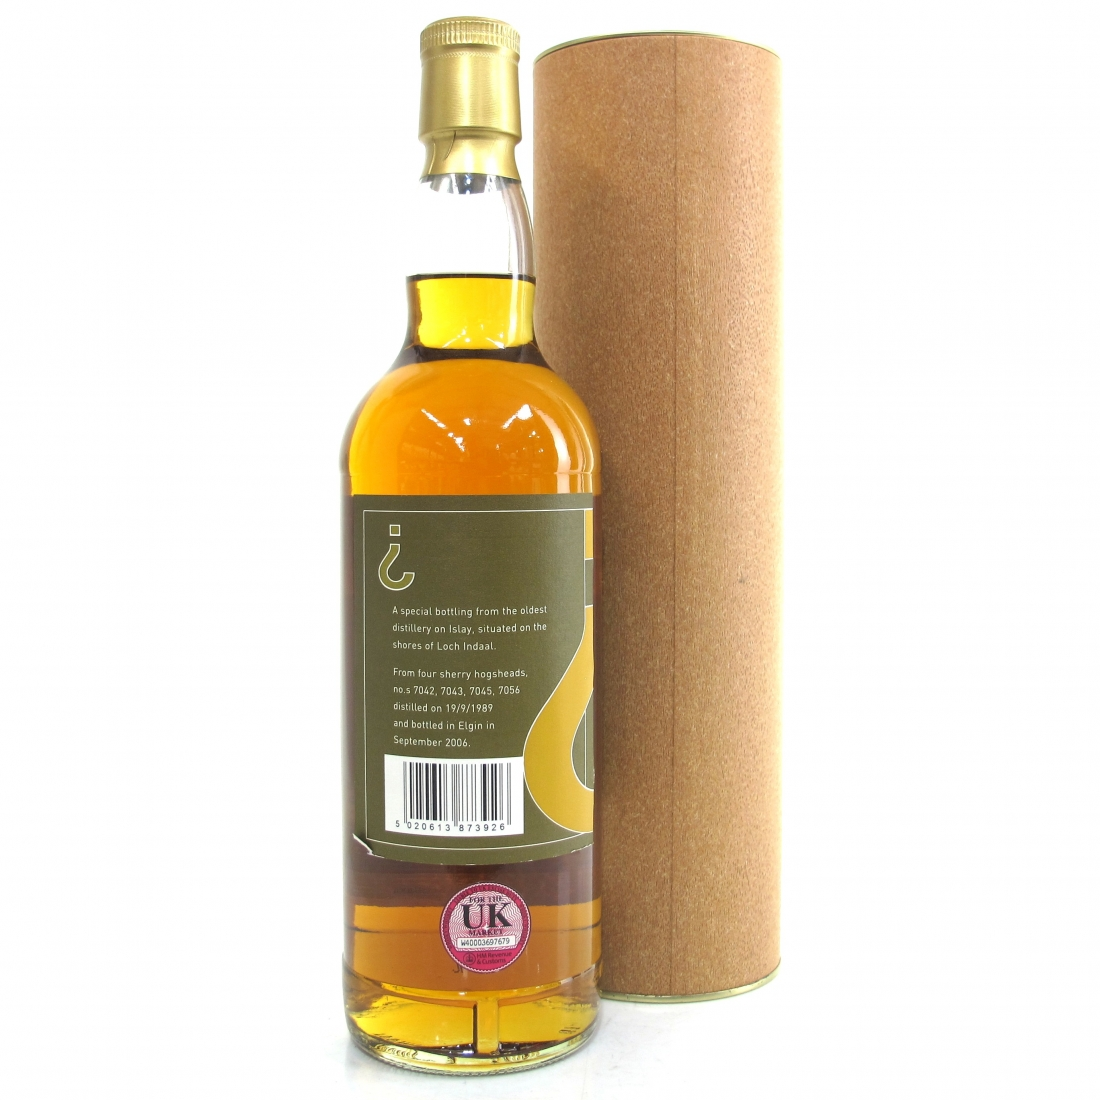 Bowmore 1989 Gordon and MacPhail 18 Year Old / Secret Stills No. 4.3